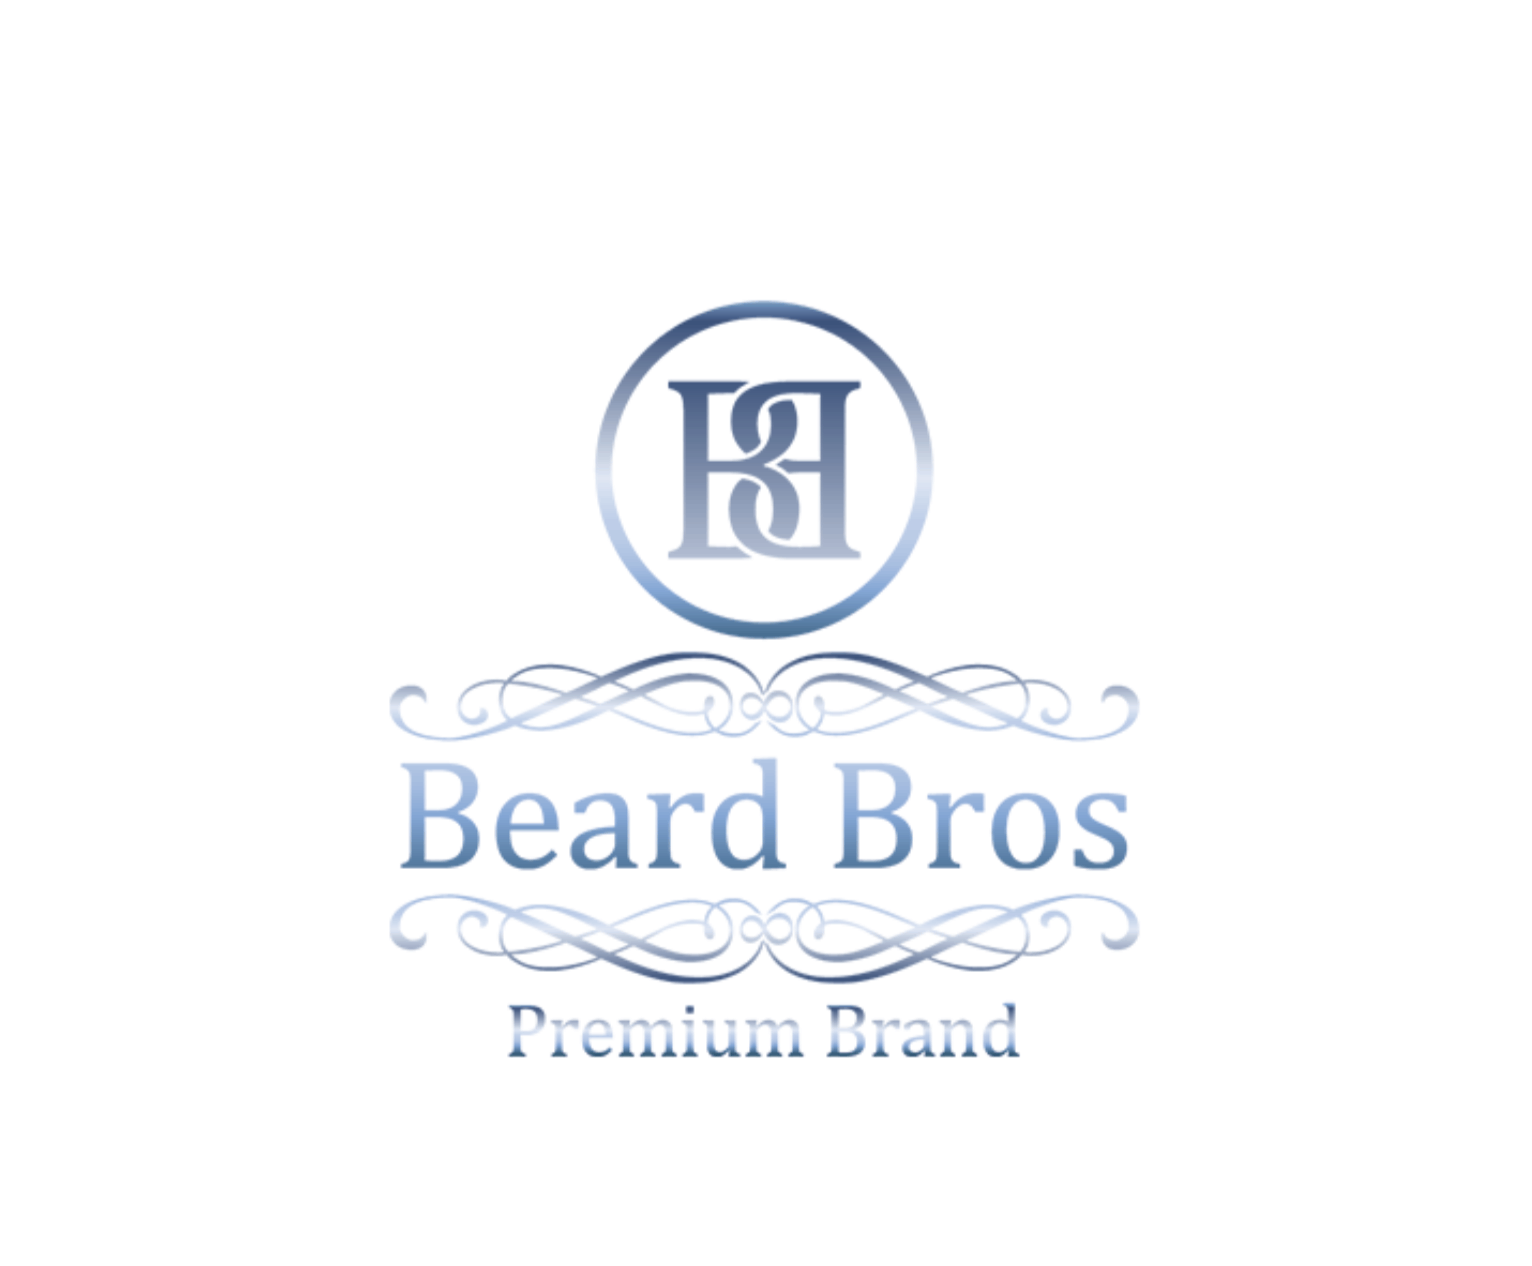 Logo by Tailored Logo - Beard Bros